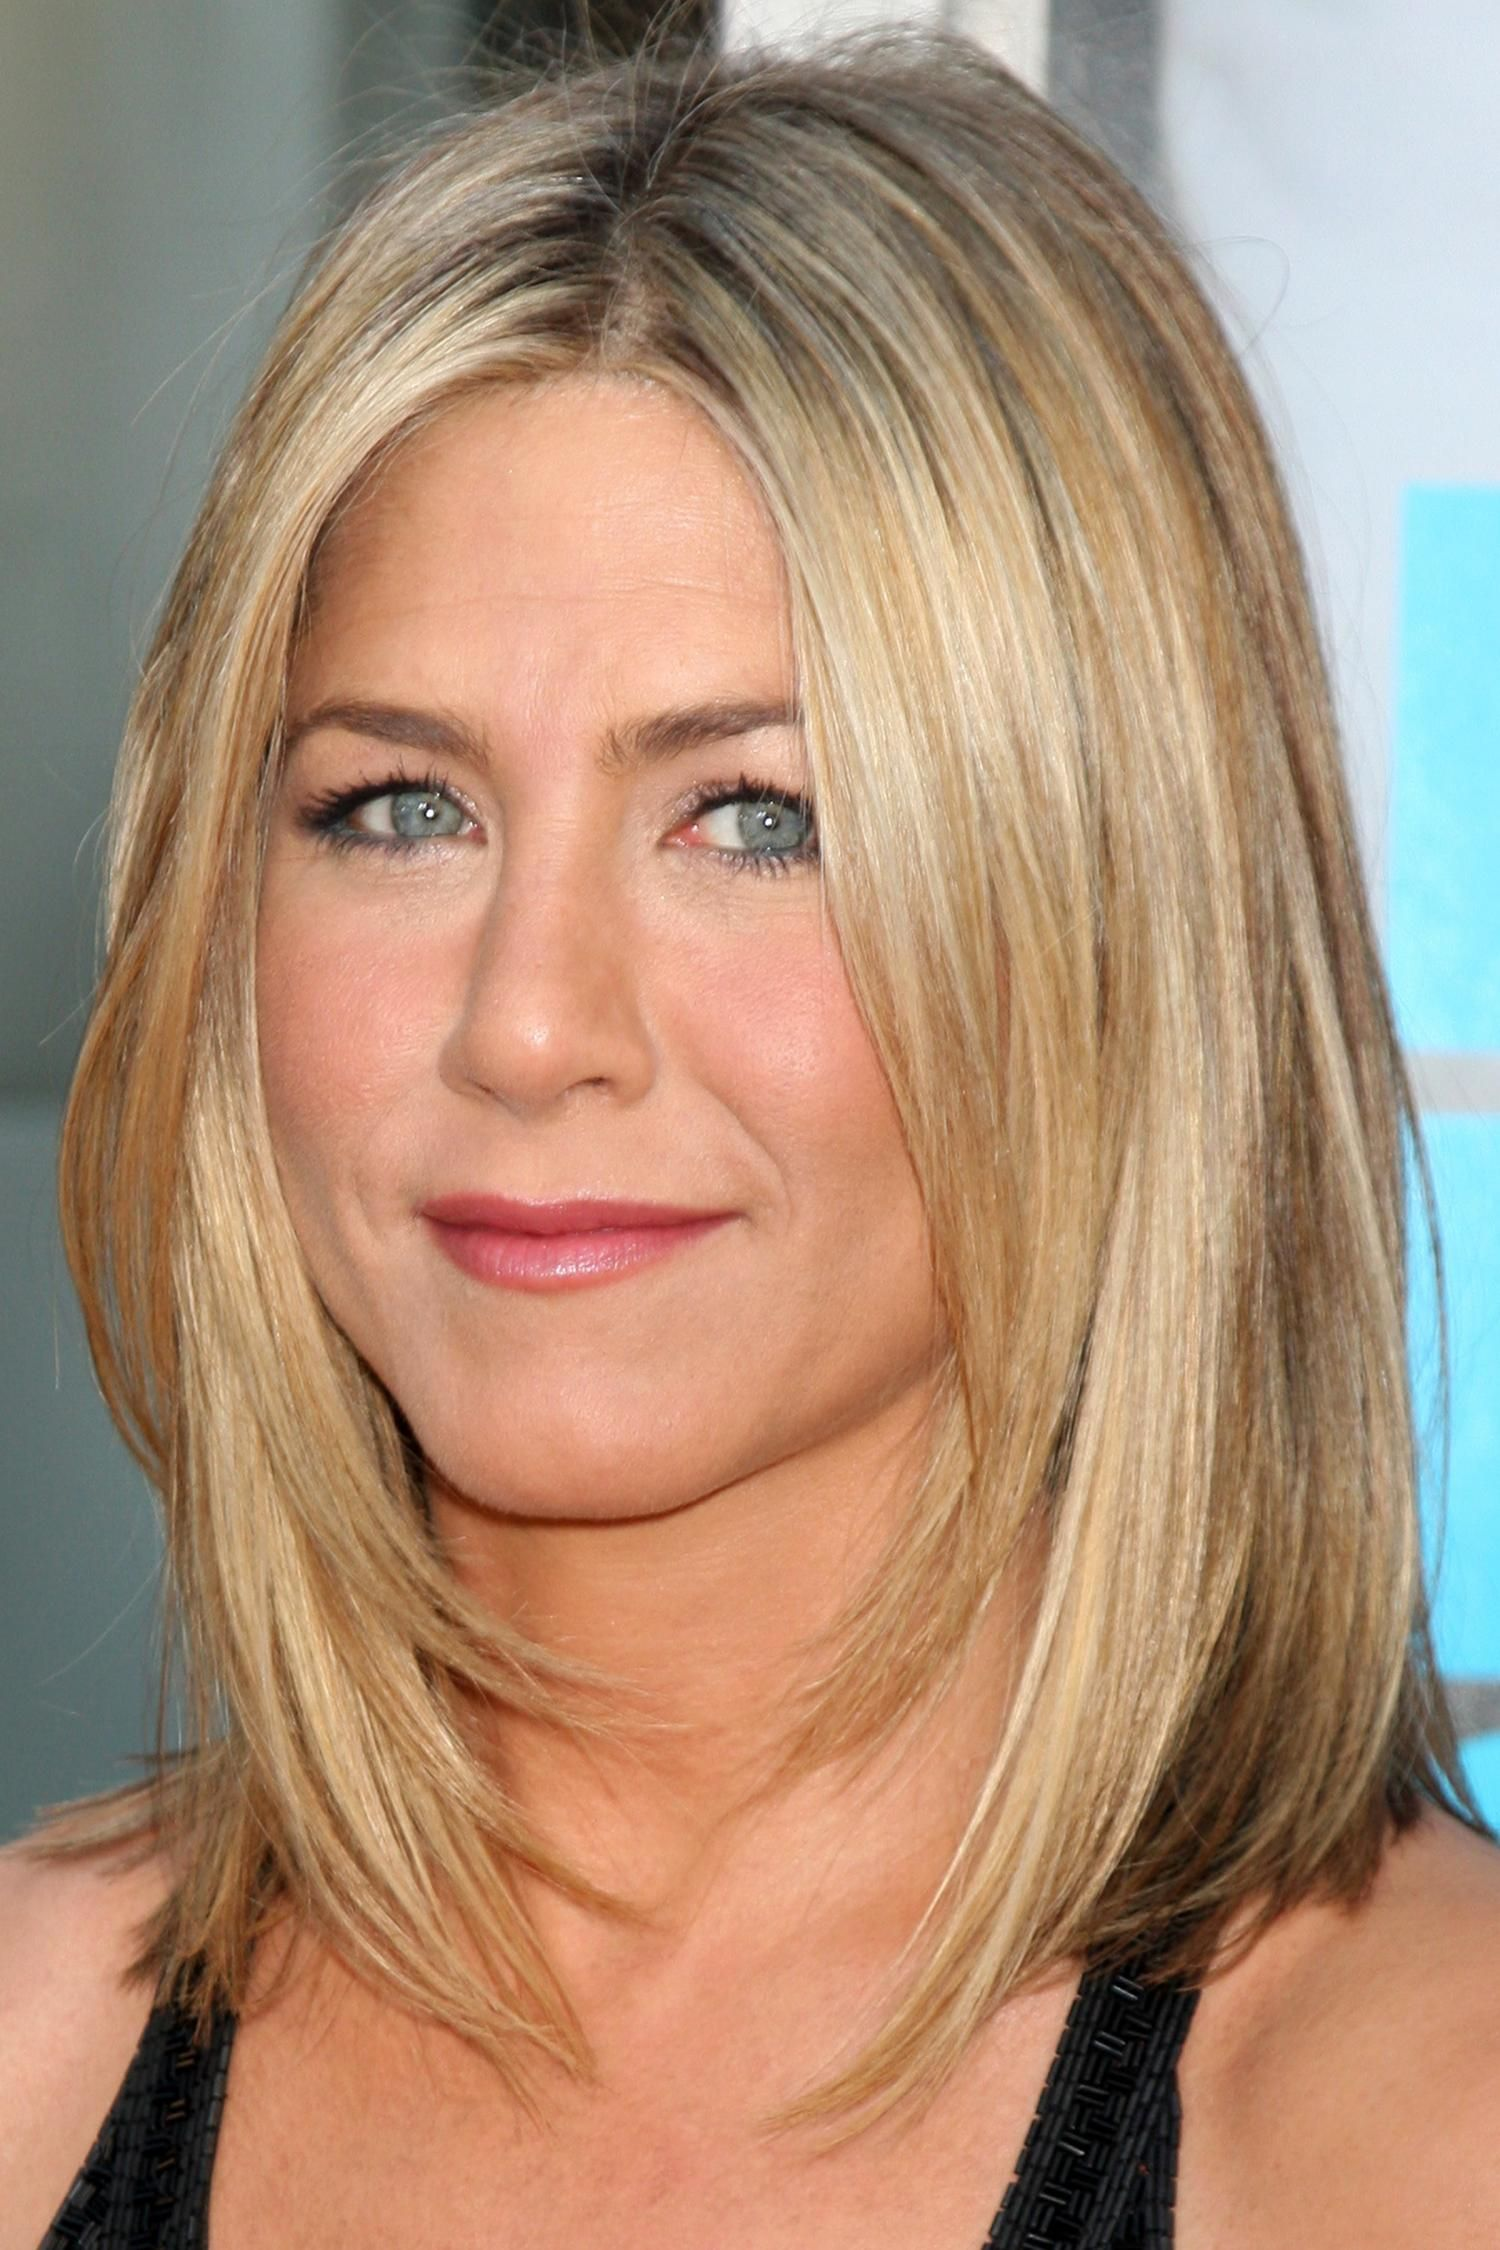 Long Beautiful Hair With Pink Bow 10 Medium Haircuts For Straight Jennifer Aniston Messy Make Up Love